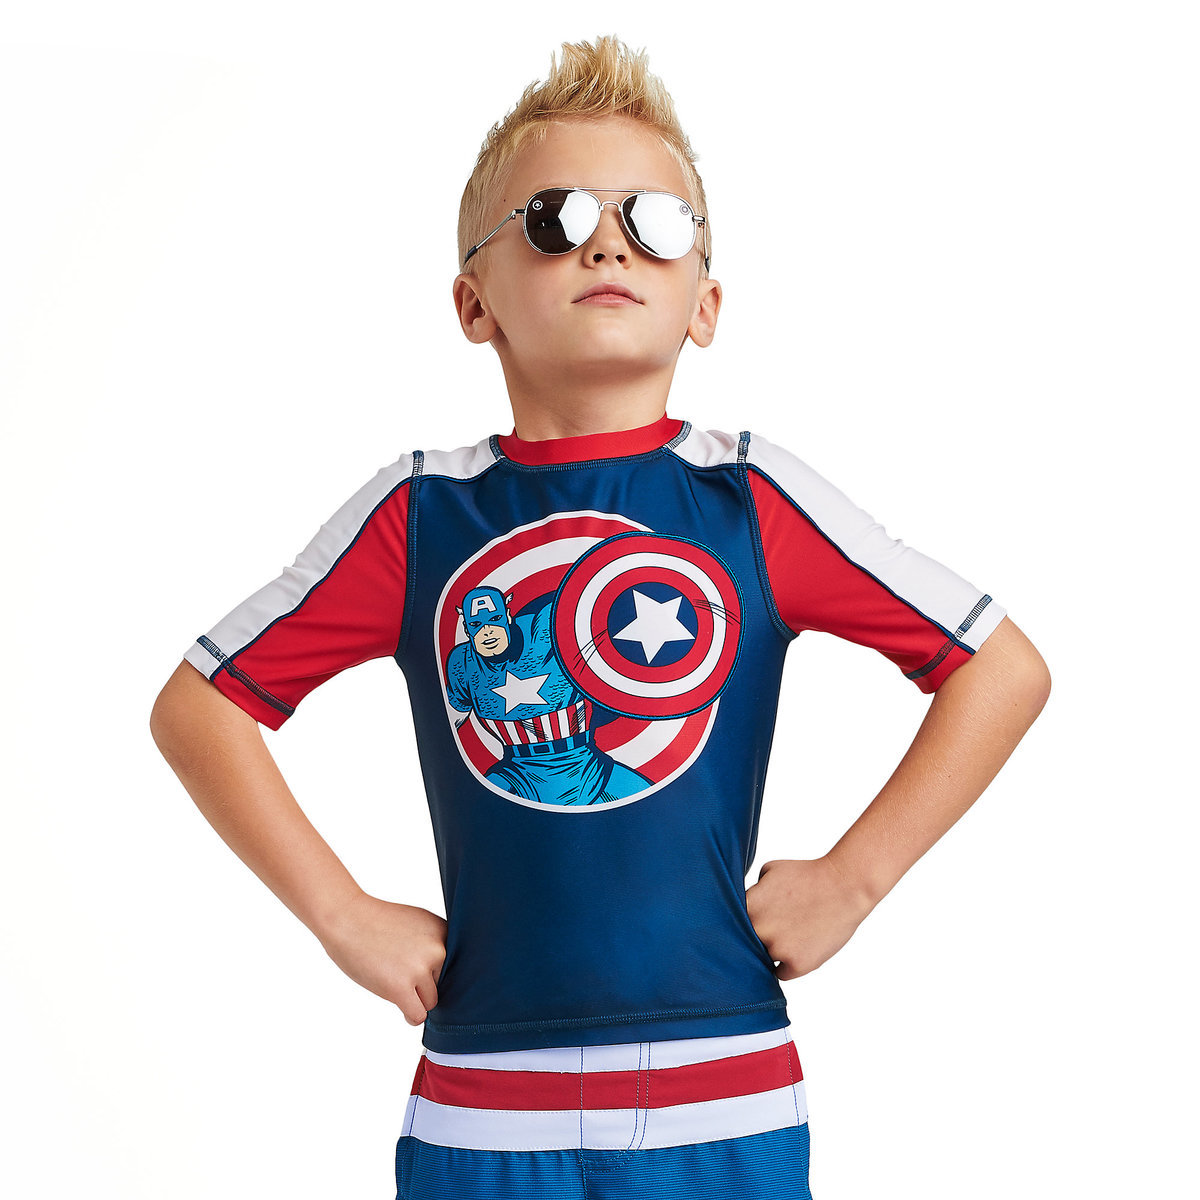 874aabfb1a Captain America Rash Guard for Kids | shopDisney